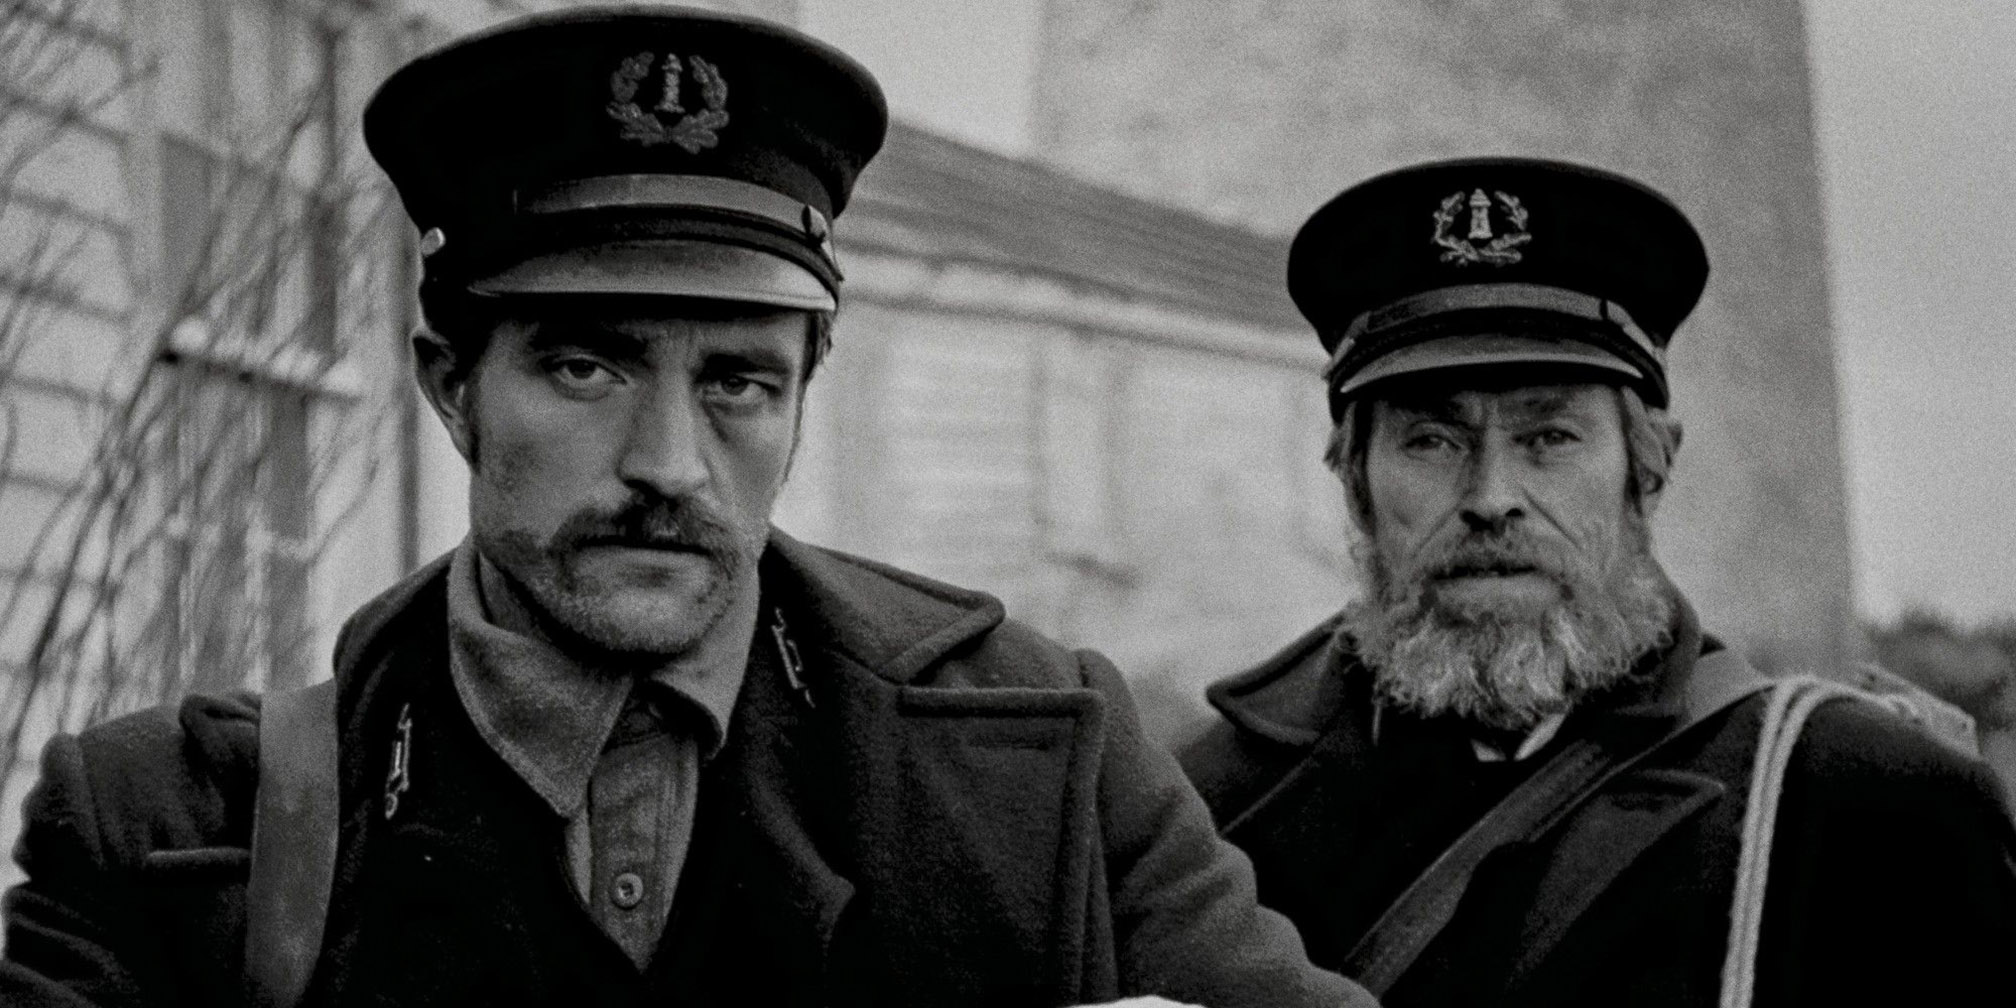 Two white men, one young with a mustache and one old with a beard, wear dark uniforms and stare straight ahead